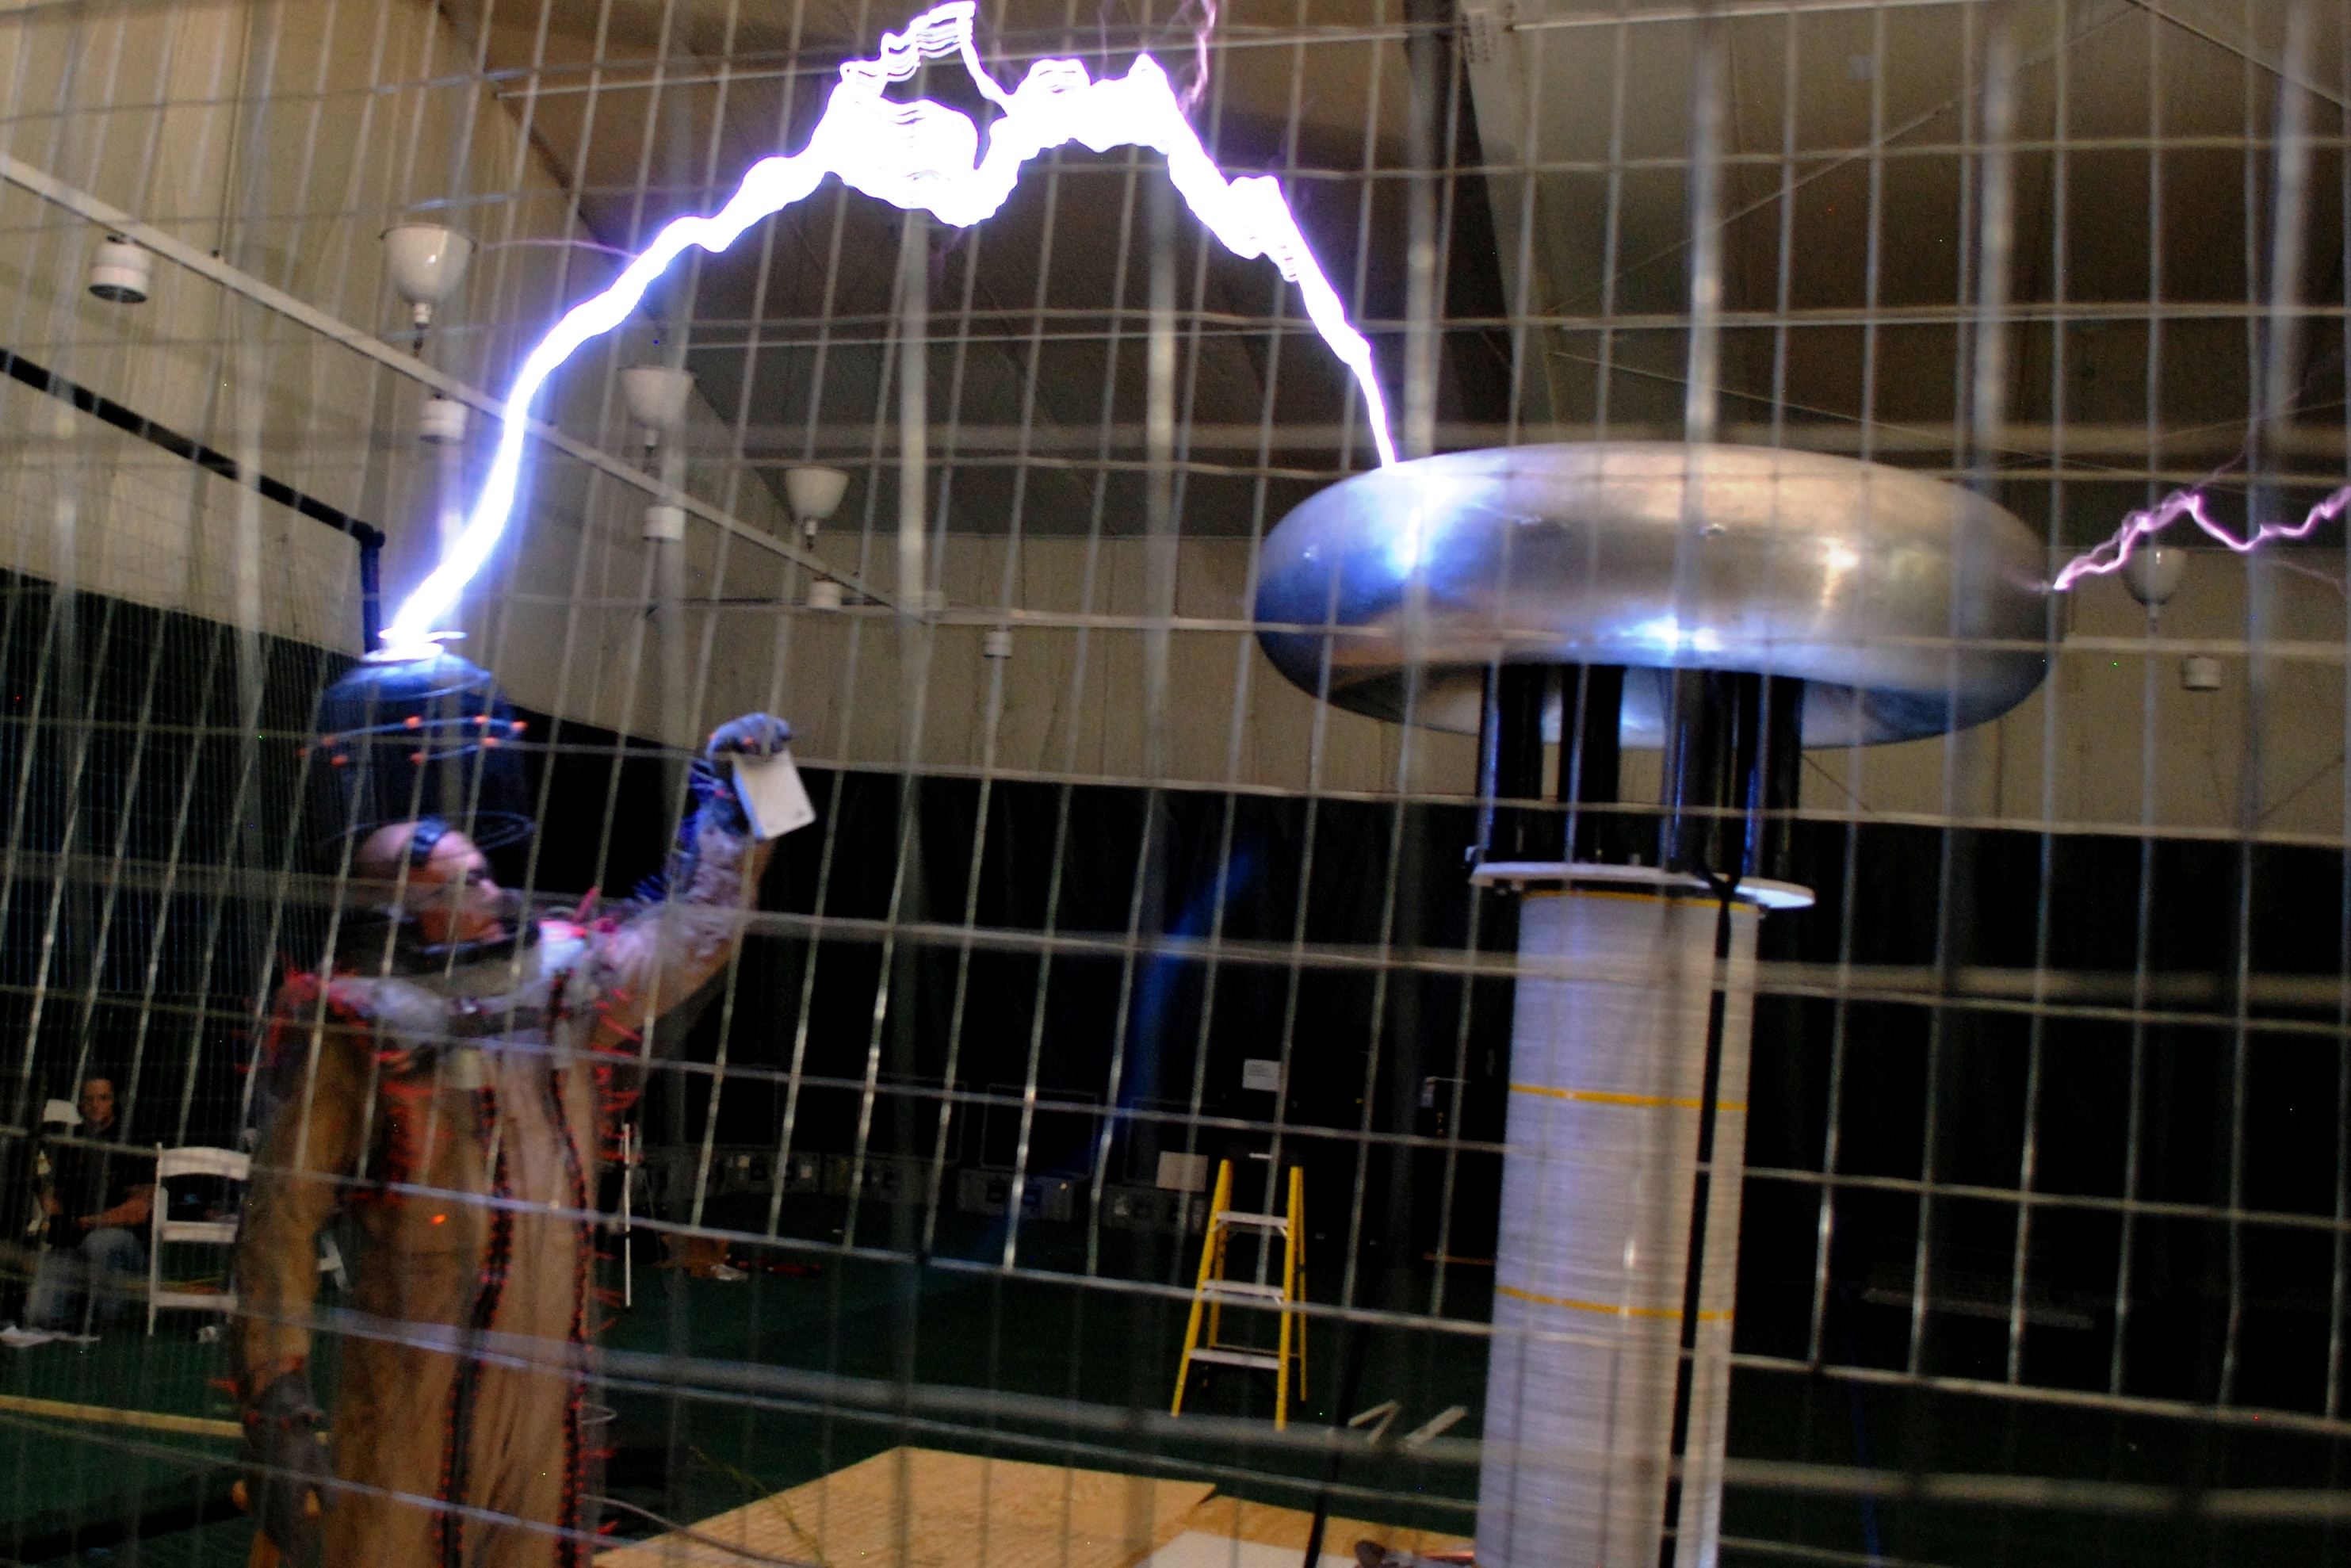 The IoSafe Rugged Portable Thunderbolt being zapped by a million-watt Tesla coil. But that's not the real message.